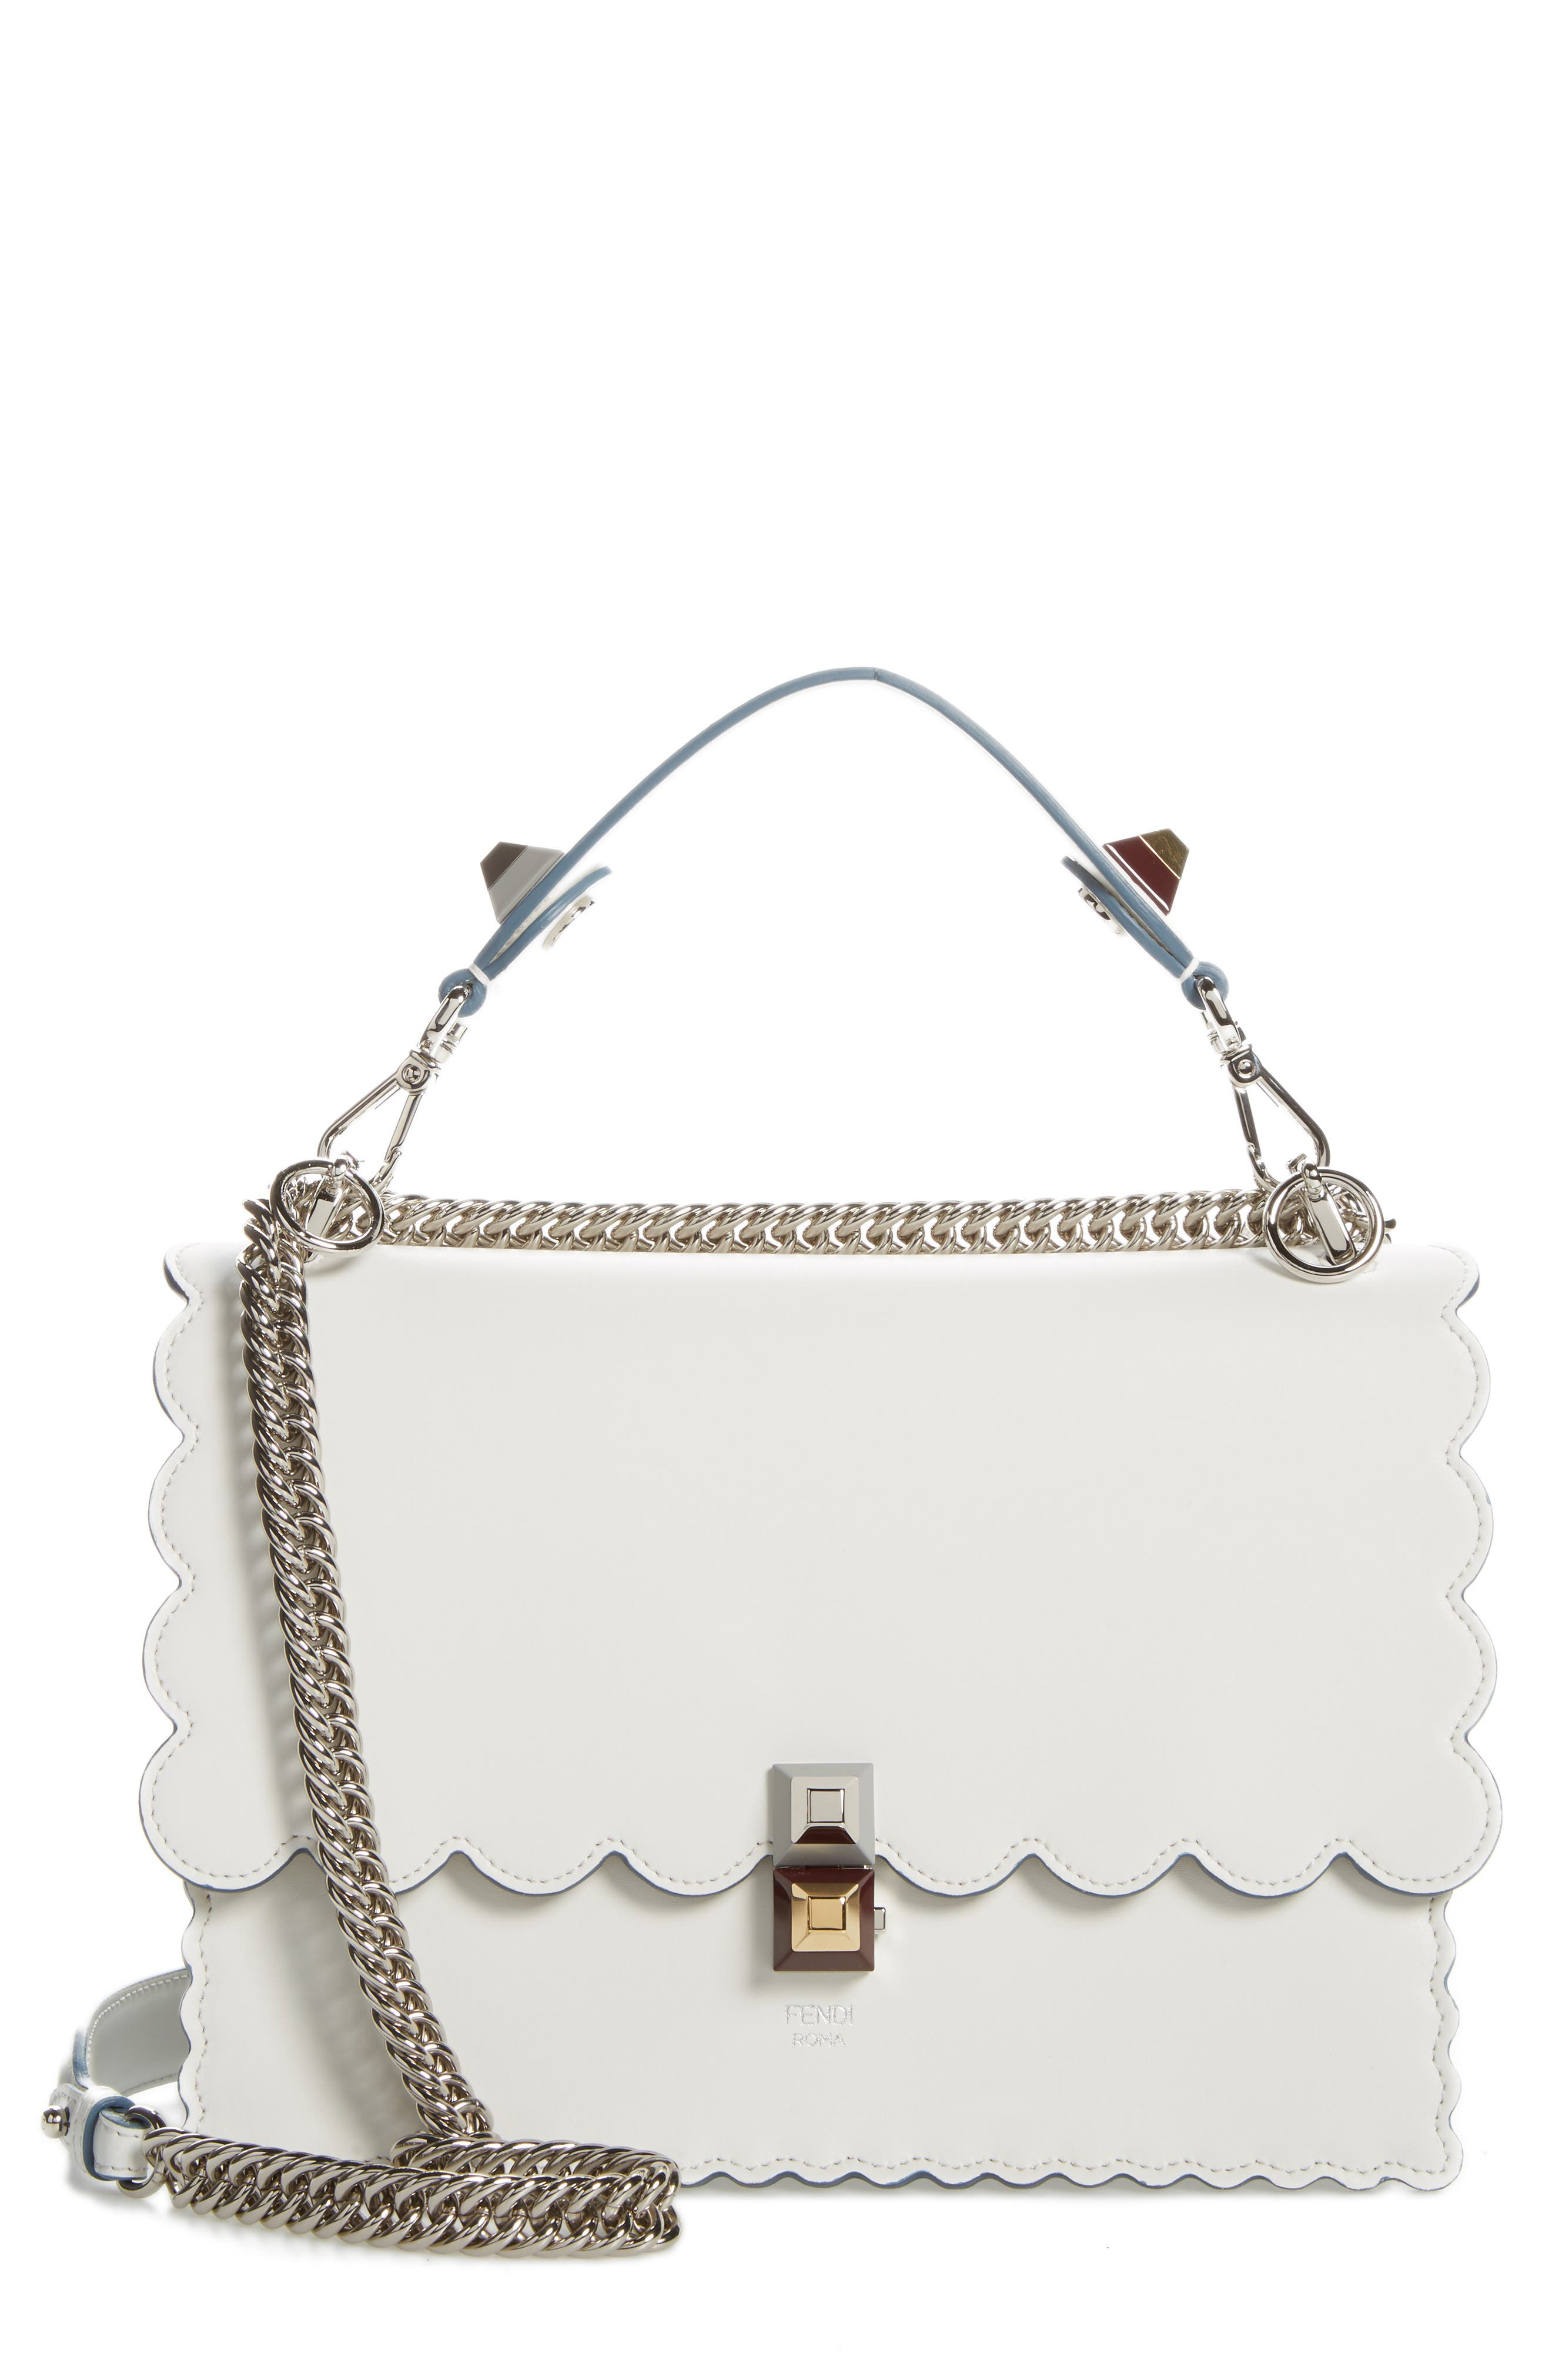 Main Image - Fendi Kan I Scallop Leather Shoulder Bag